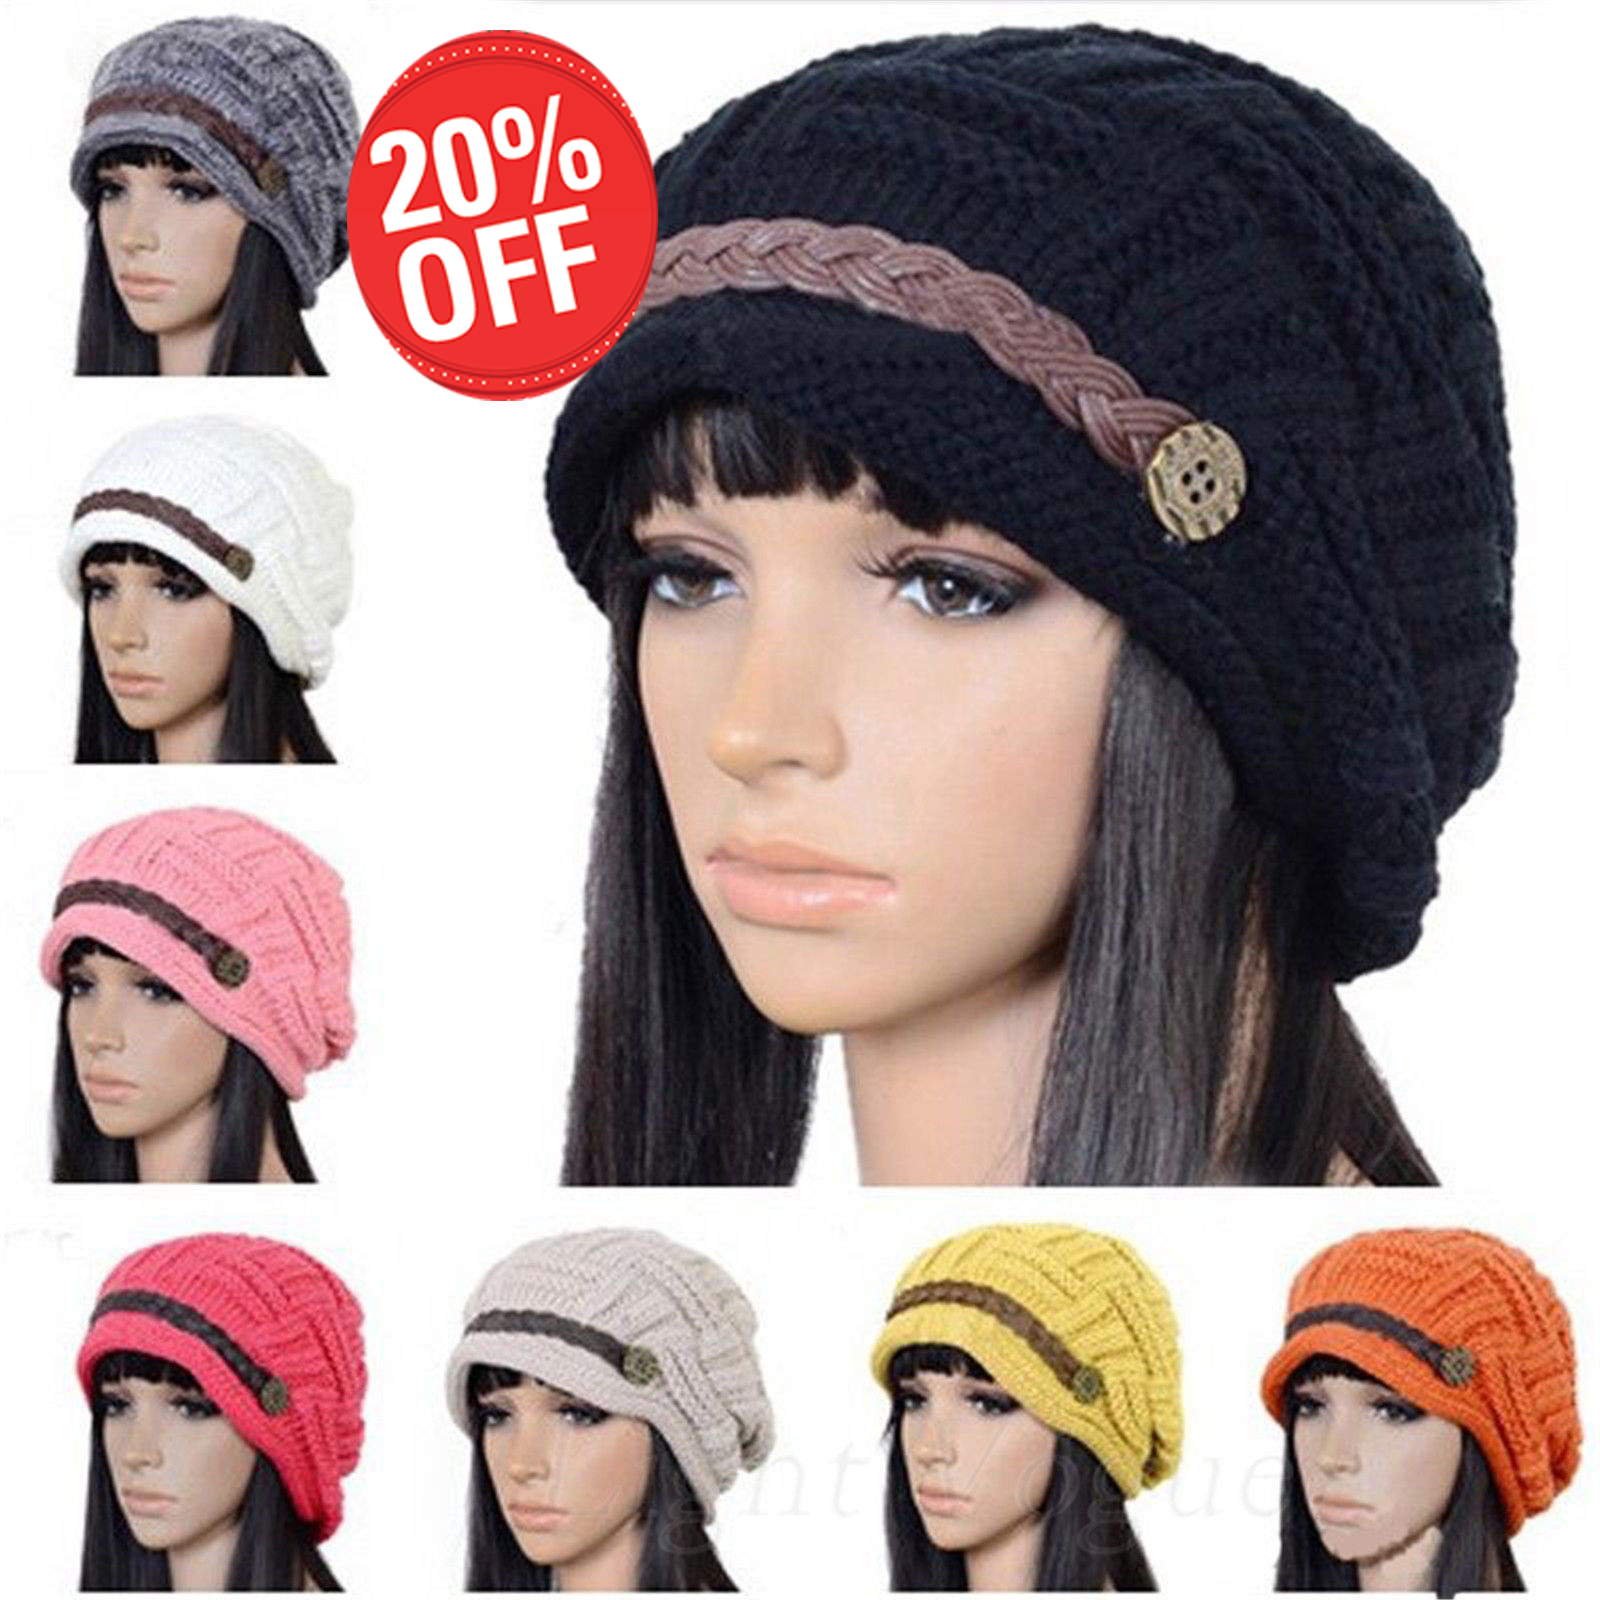 77db9dc02f4 Women Braided Winter Warm Baggy Beanie Knit Oversized Crochet Ski Hat Cap  US ILO